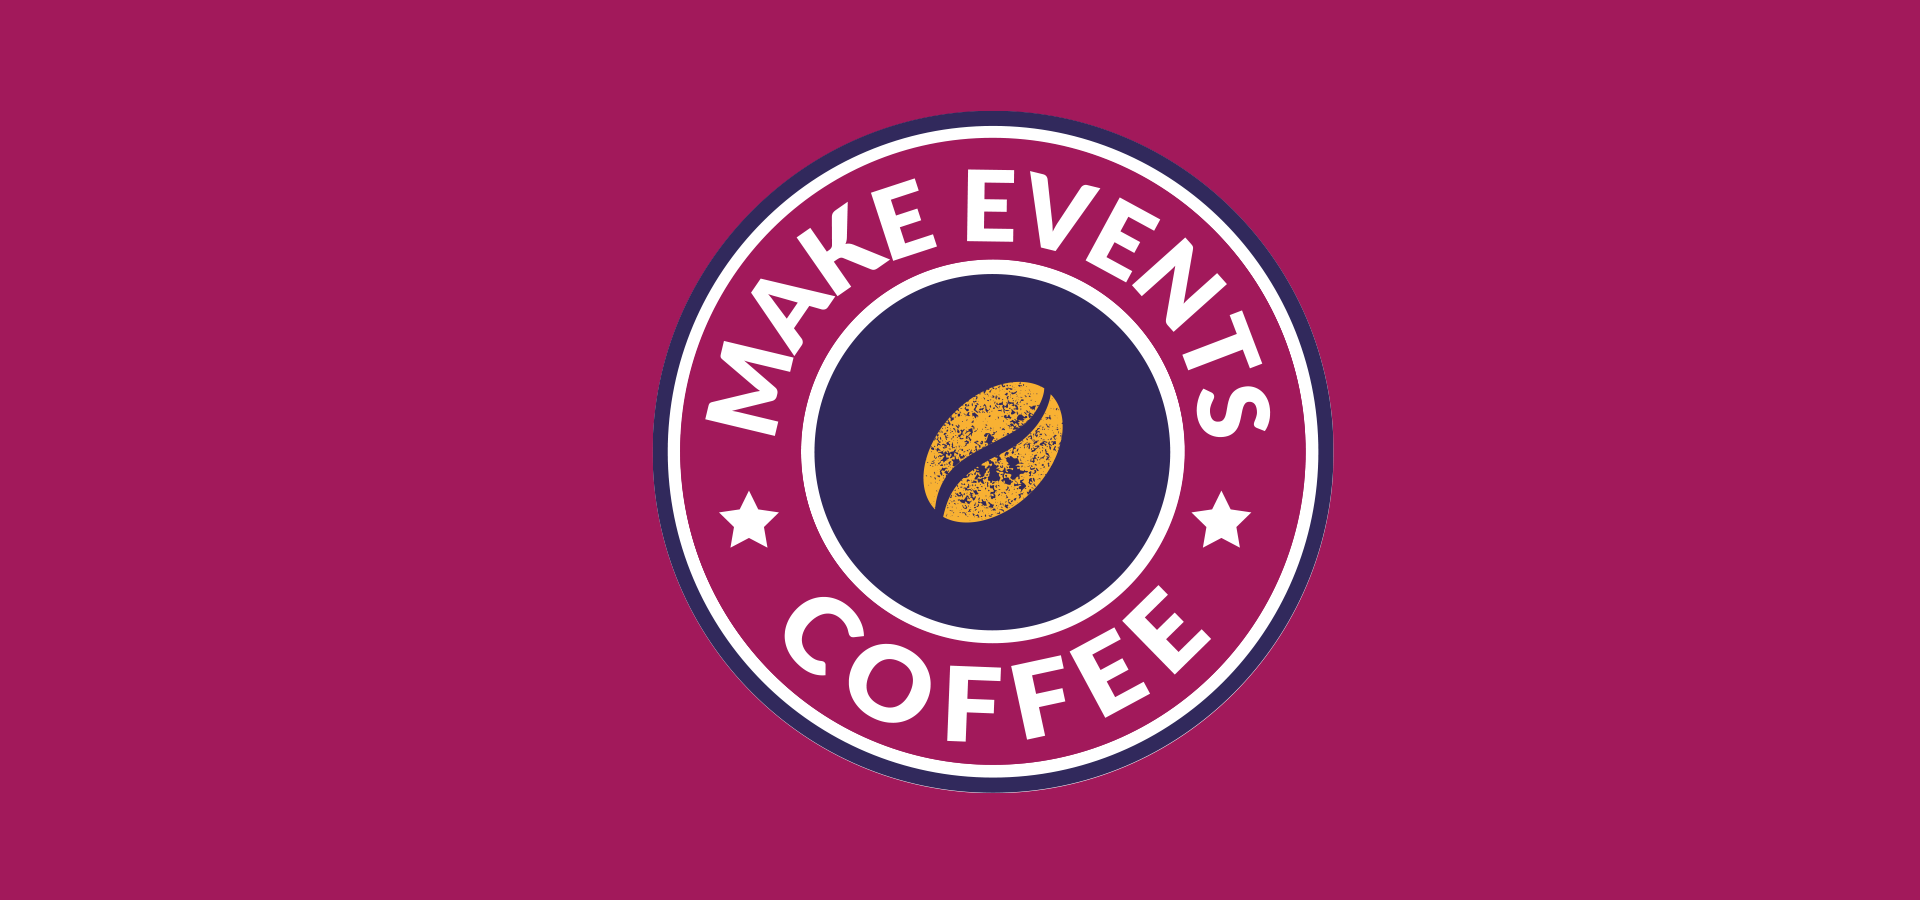 Make Events | Events Company Manchester | Make Events coffee logo